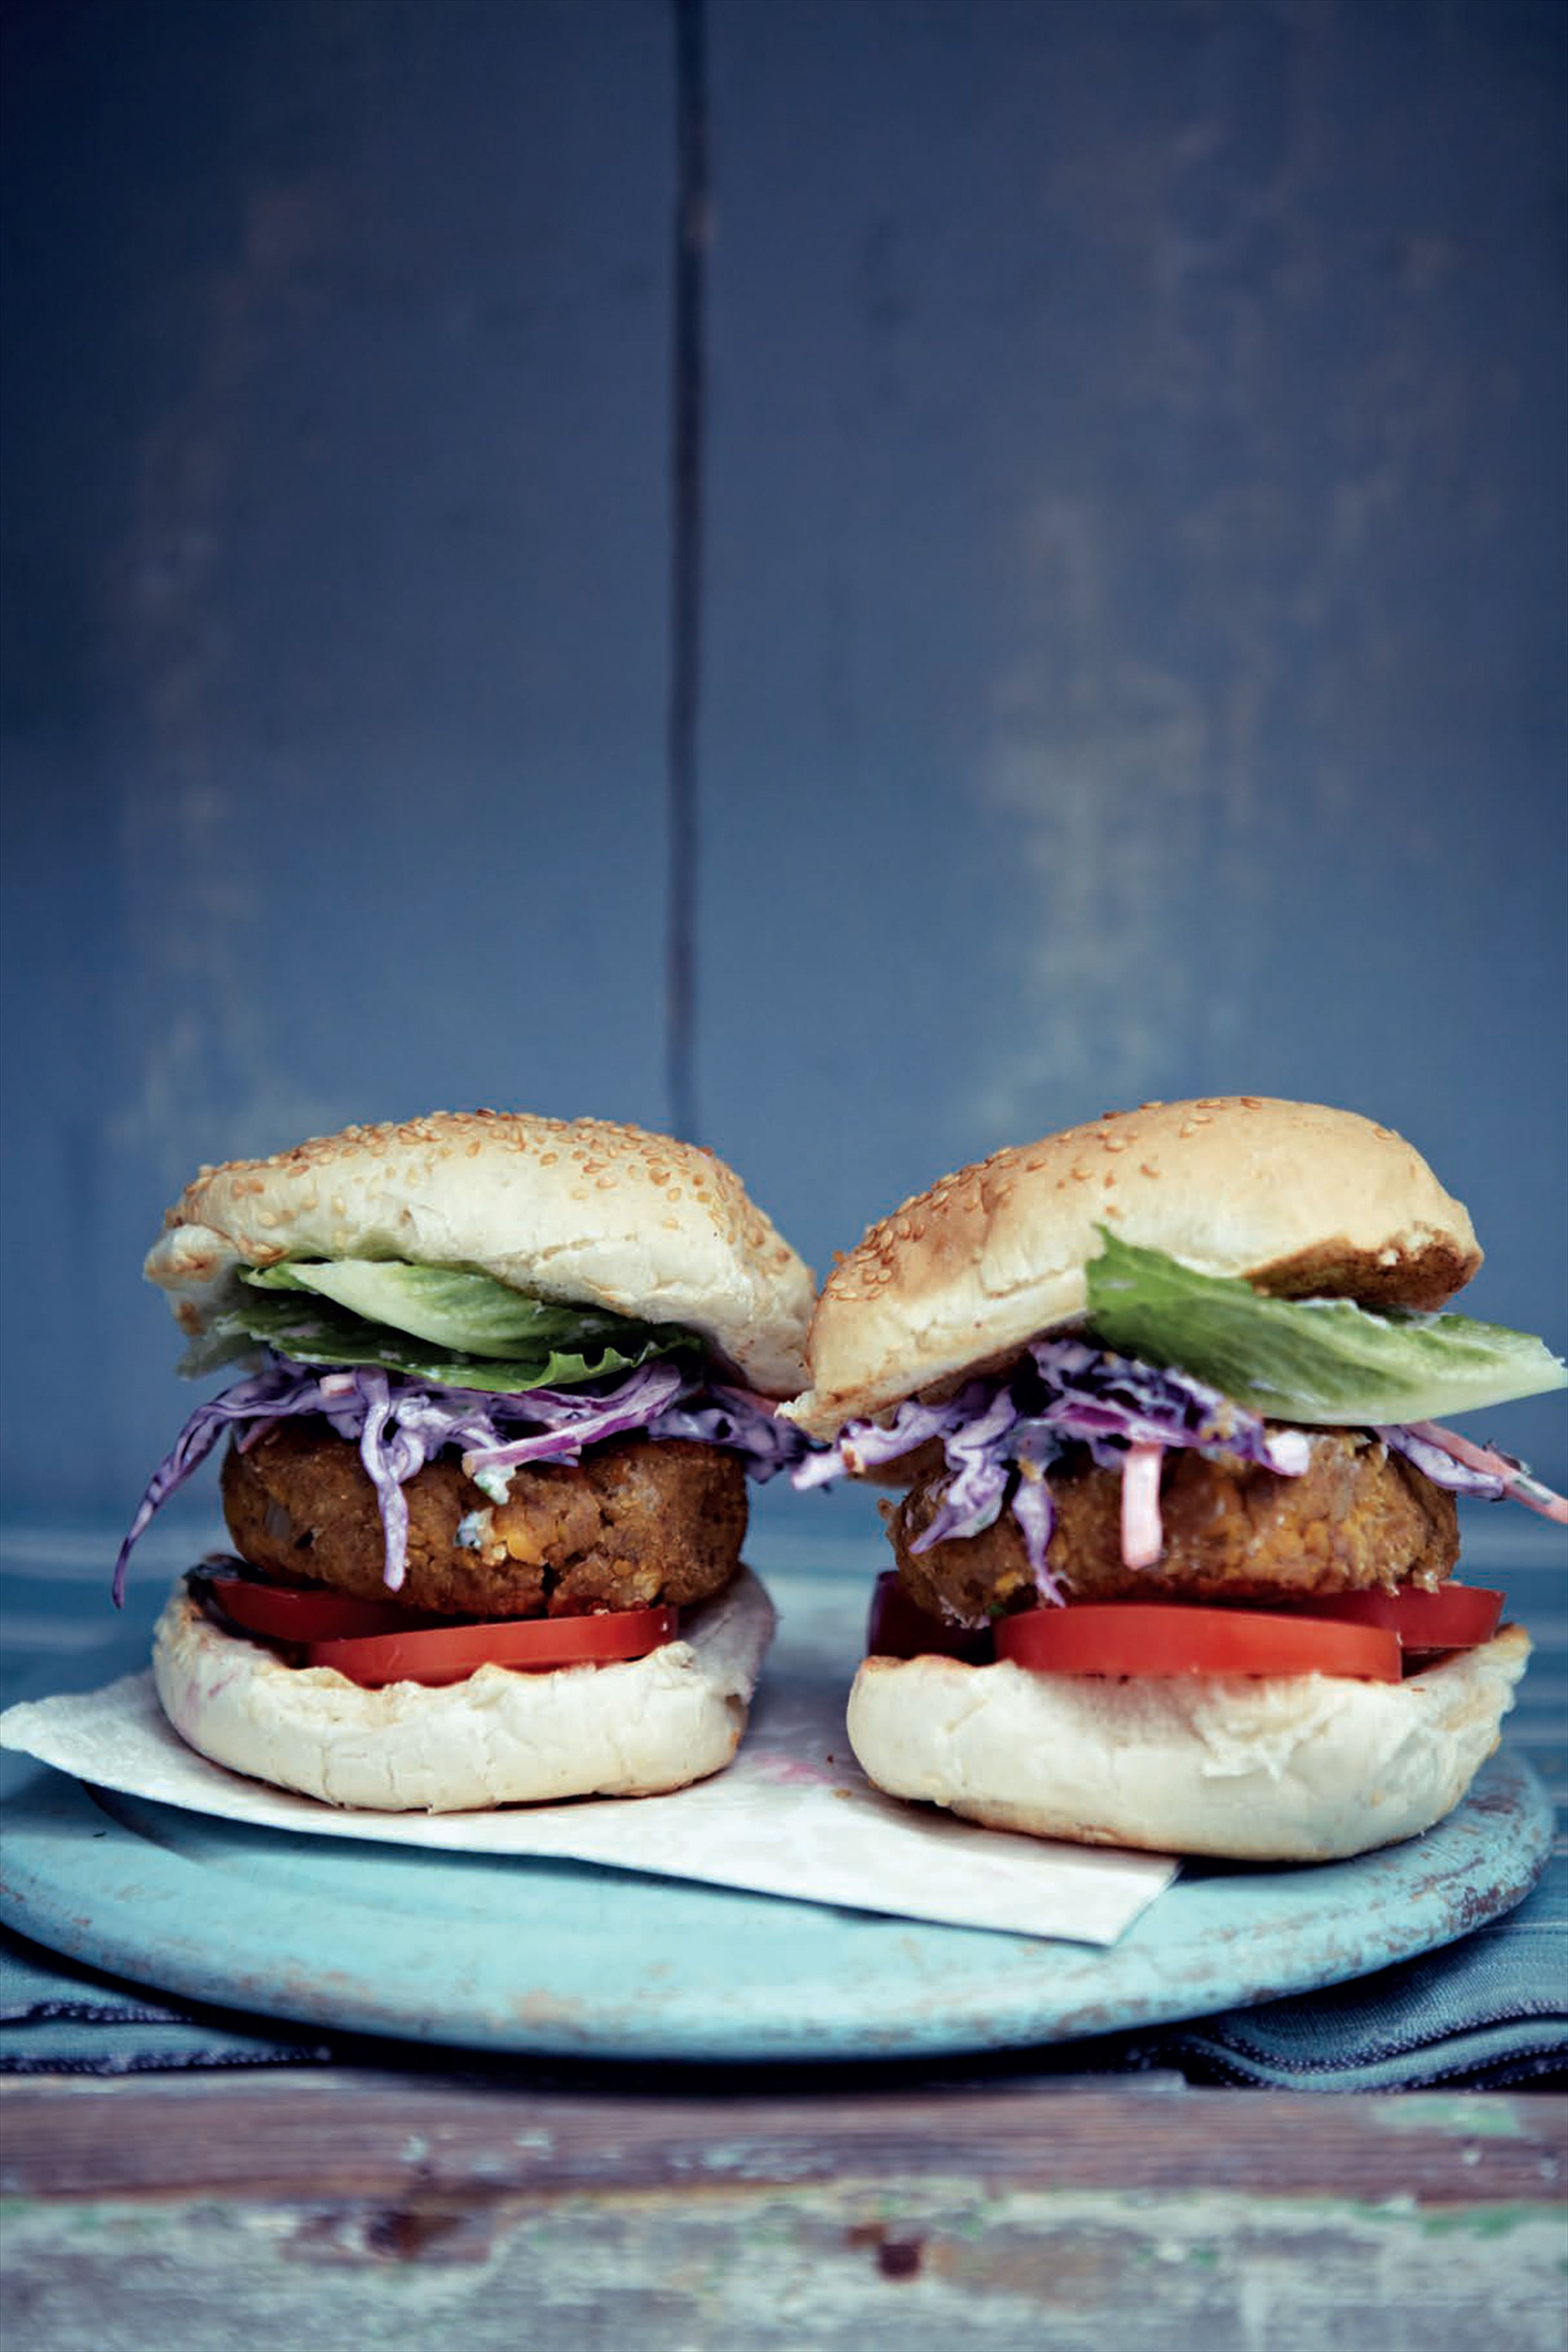 Mile-high chickpea burgers with Indian purple coleslaw